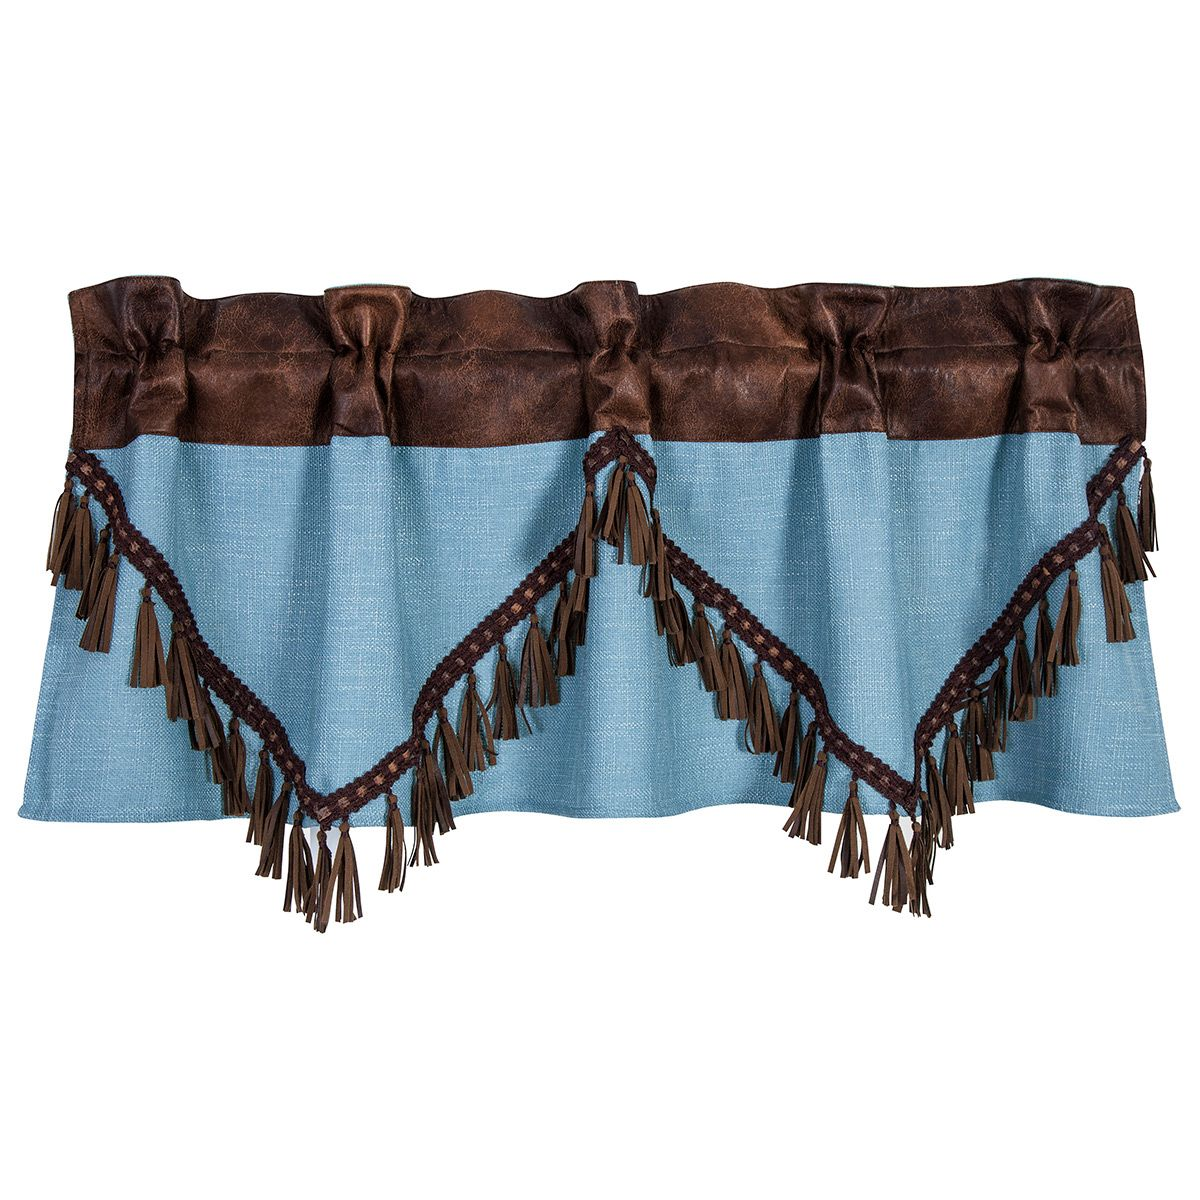 Old Dominion Tassel Valance